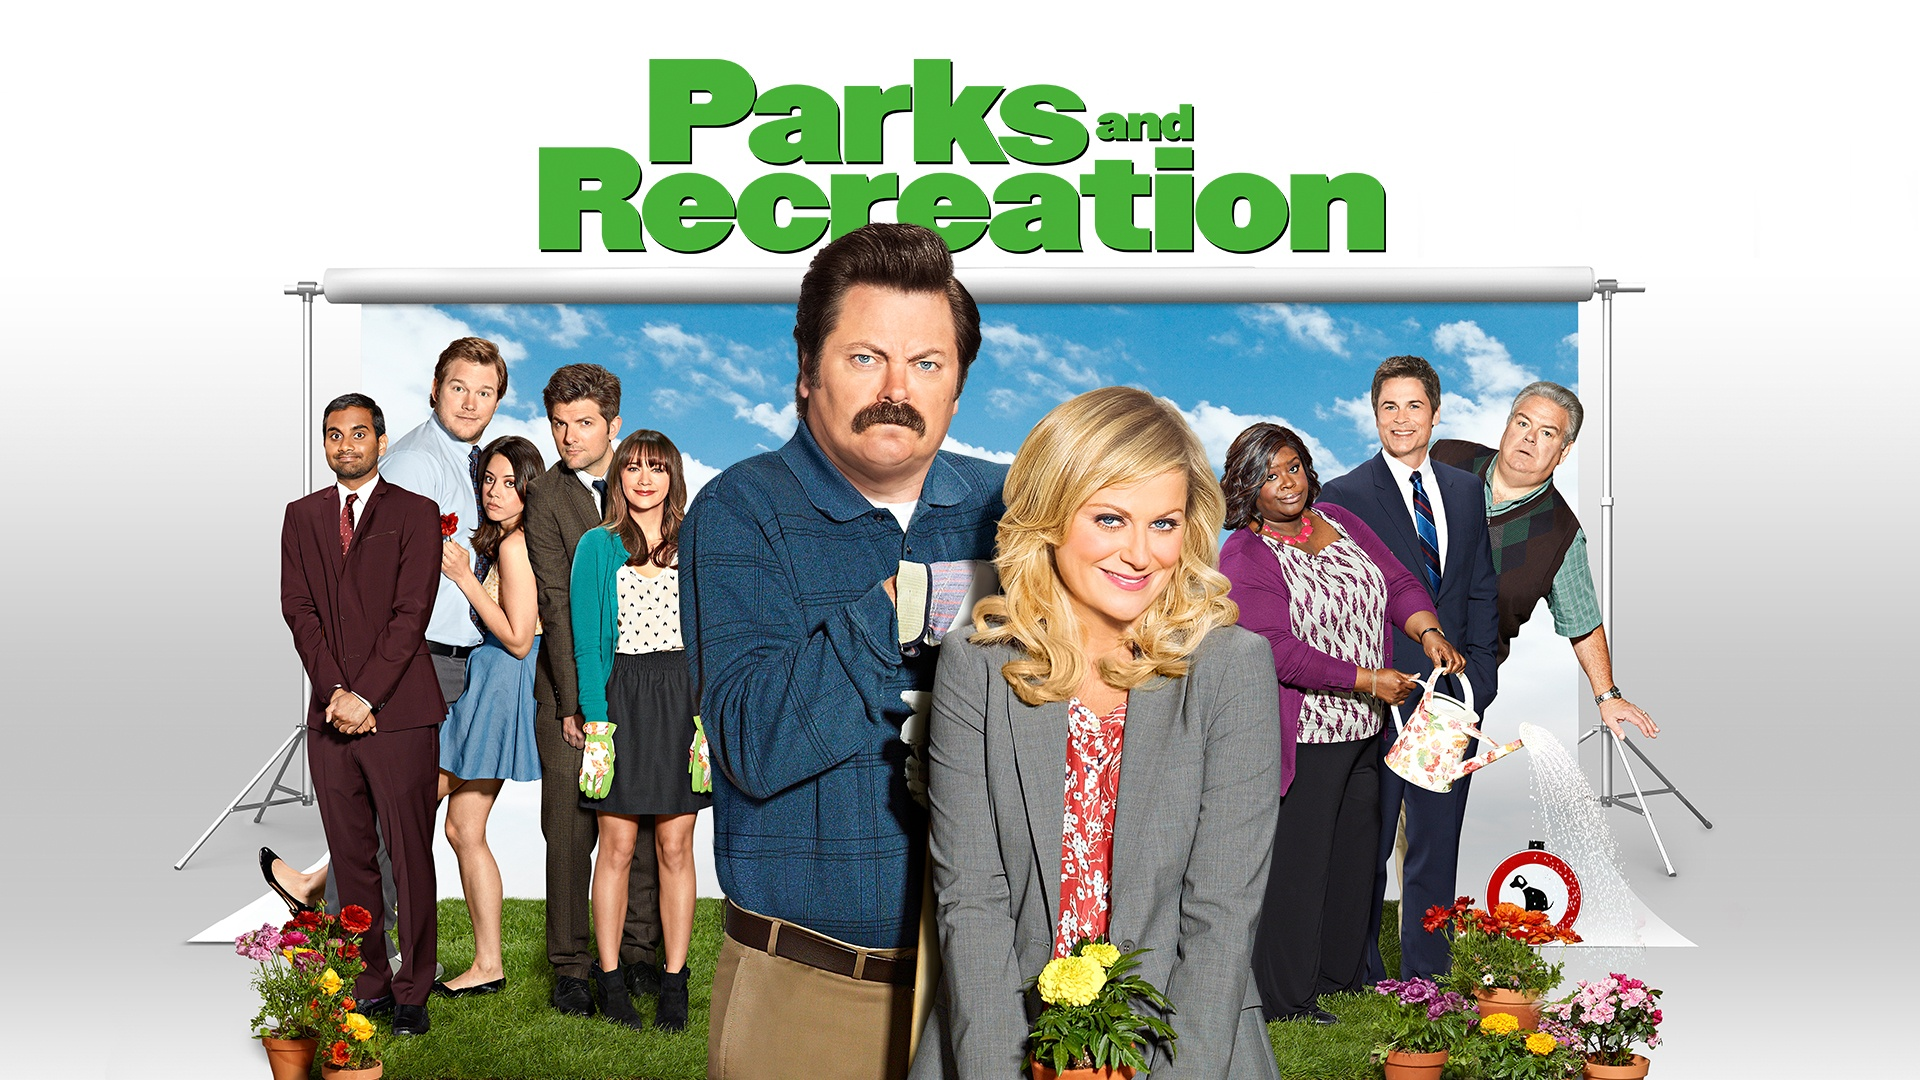 Do You Think You Are A Parks and Recreation Fan?